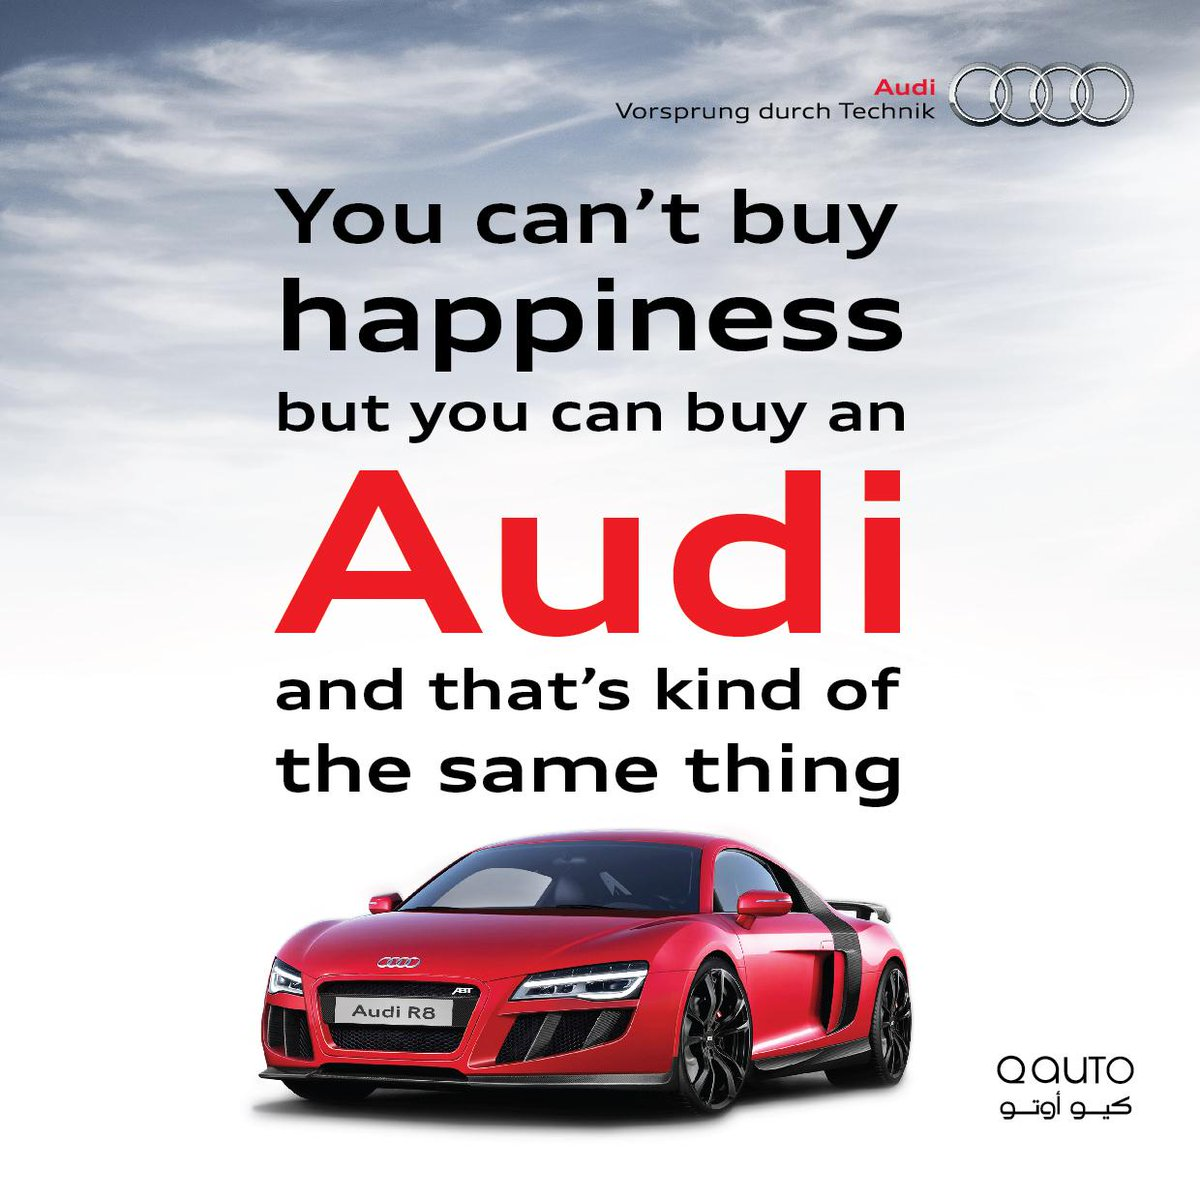 AUDI QATAR On Twitter You Cant Buy Happiness But You Can Buy An - Buy an audi